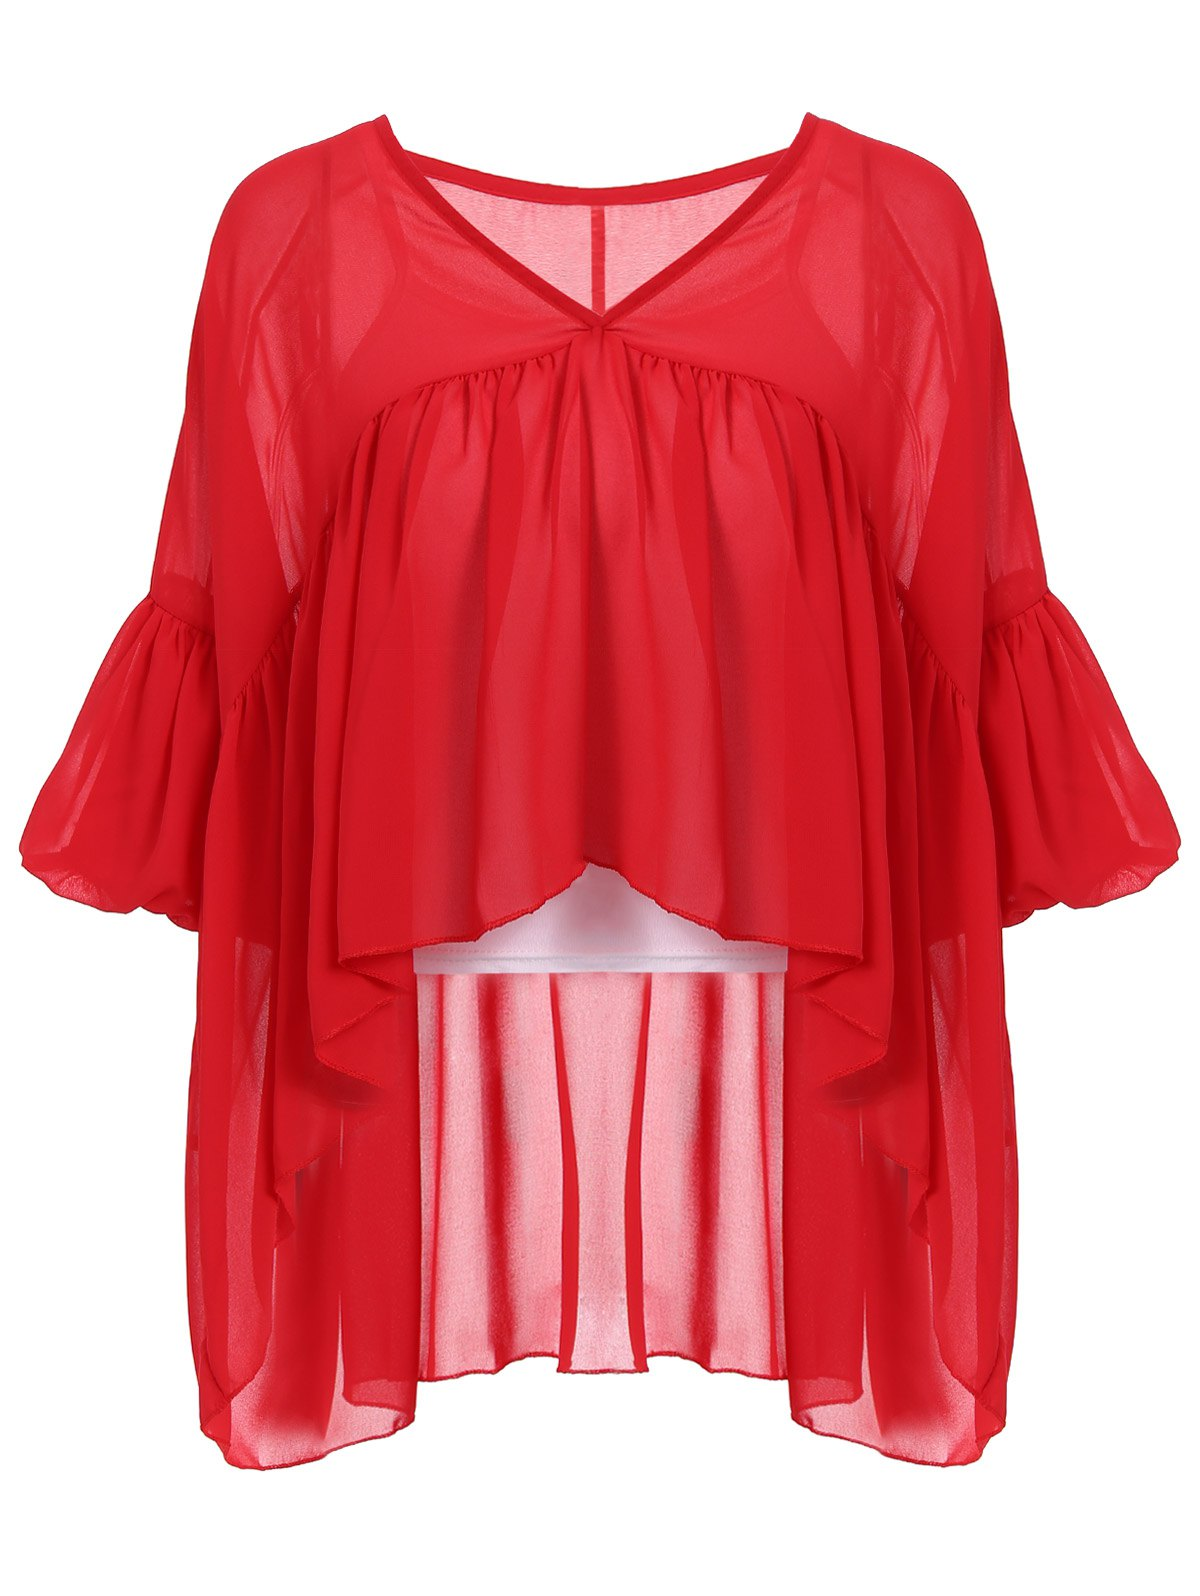 Stylish Women's V-Neck Lantern Sleeve Flounced Blouse + Tank Top - M RED